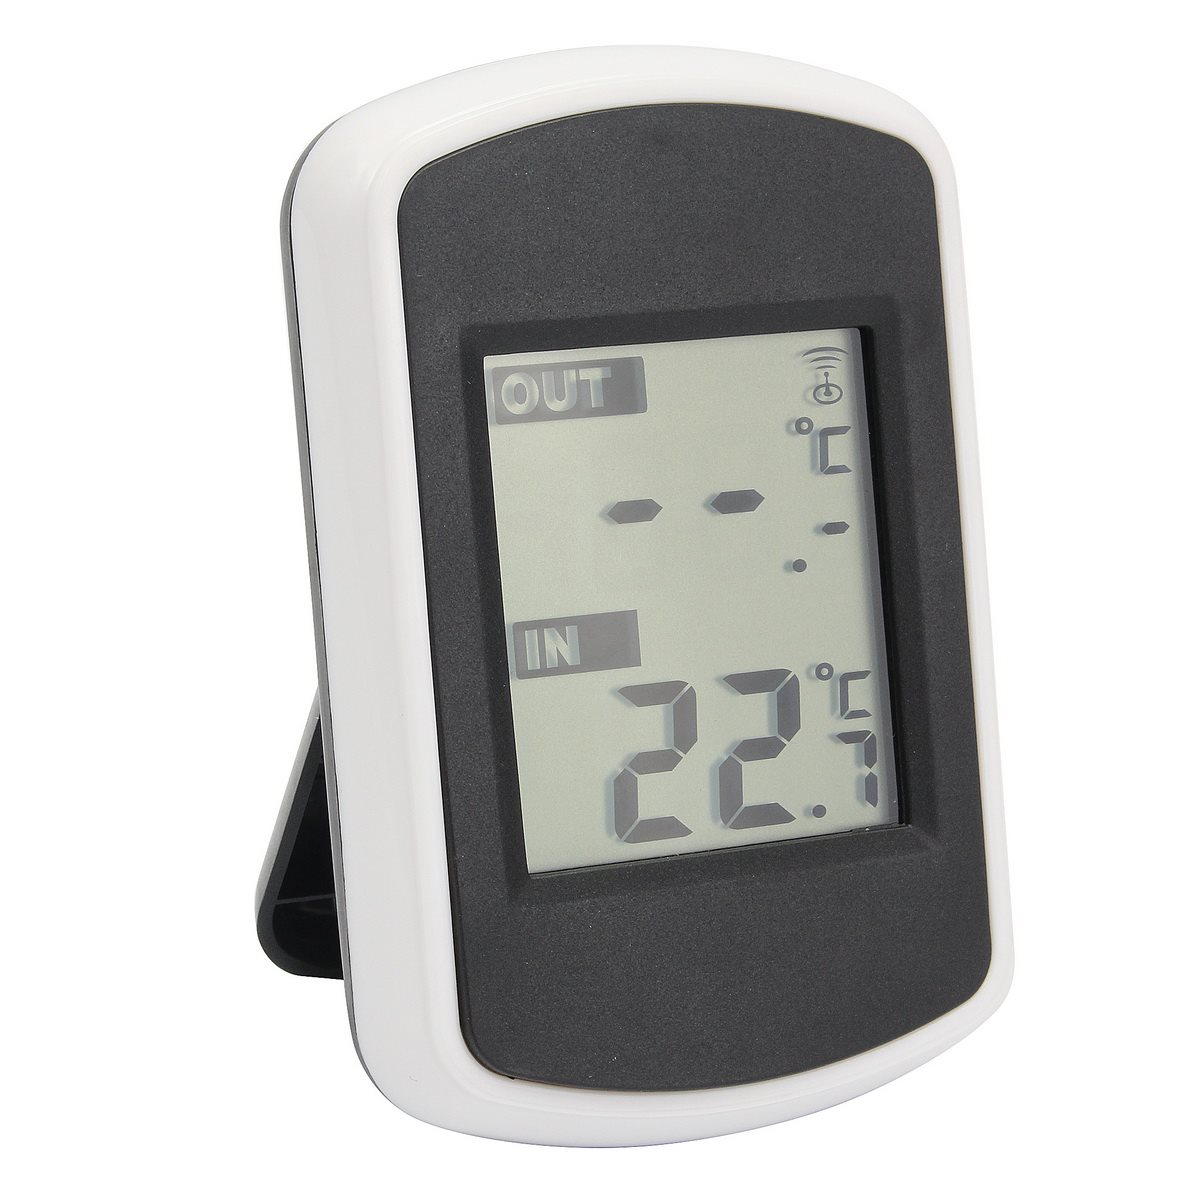 LCD Display Digital Wireless Thermometer Hygrometer Electronic Temperature Humidity Meter Weather Station Indoor Outdoor Tester mango mango ma002ewhxi37